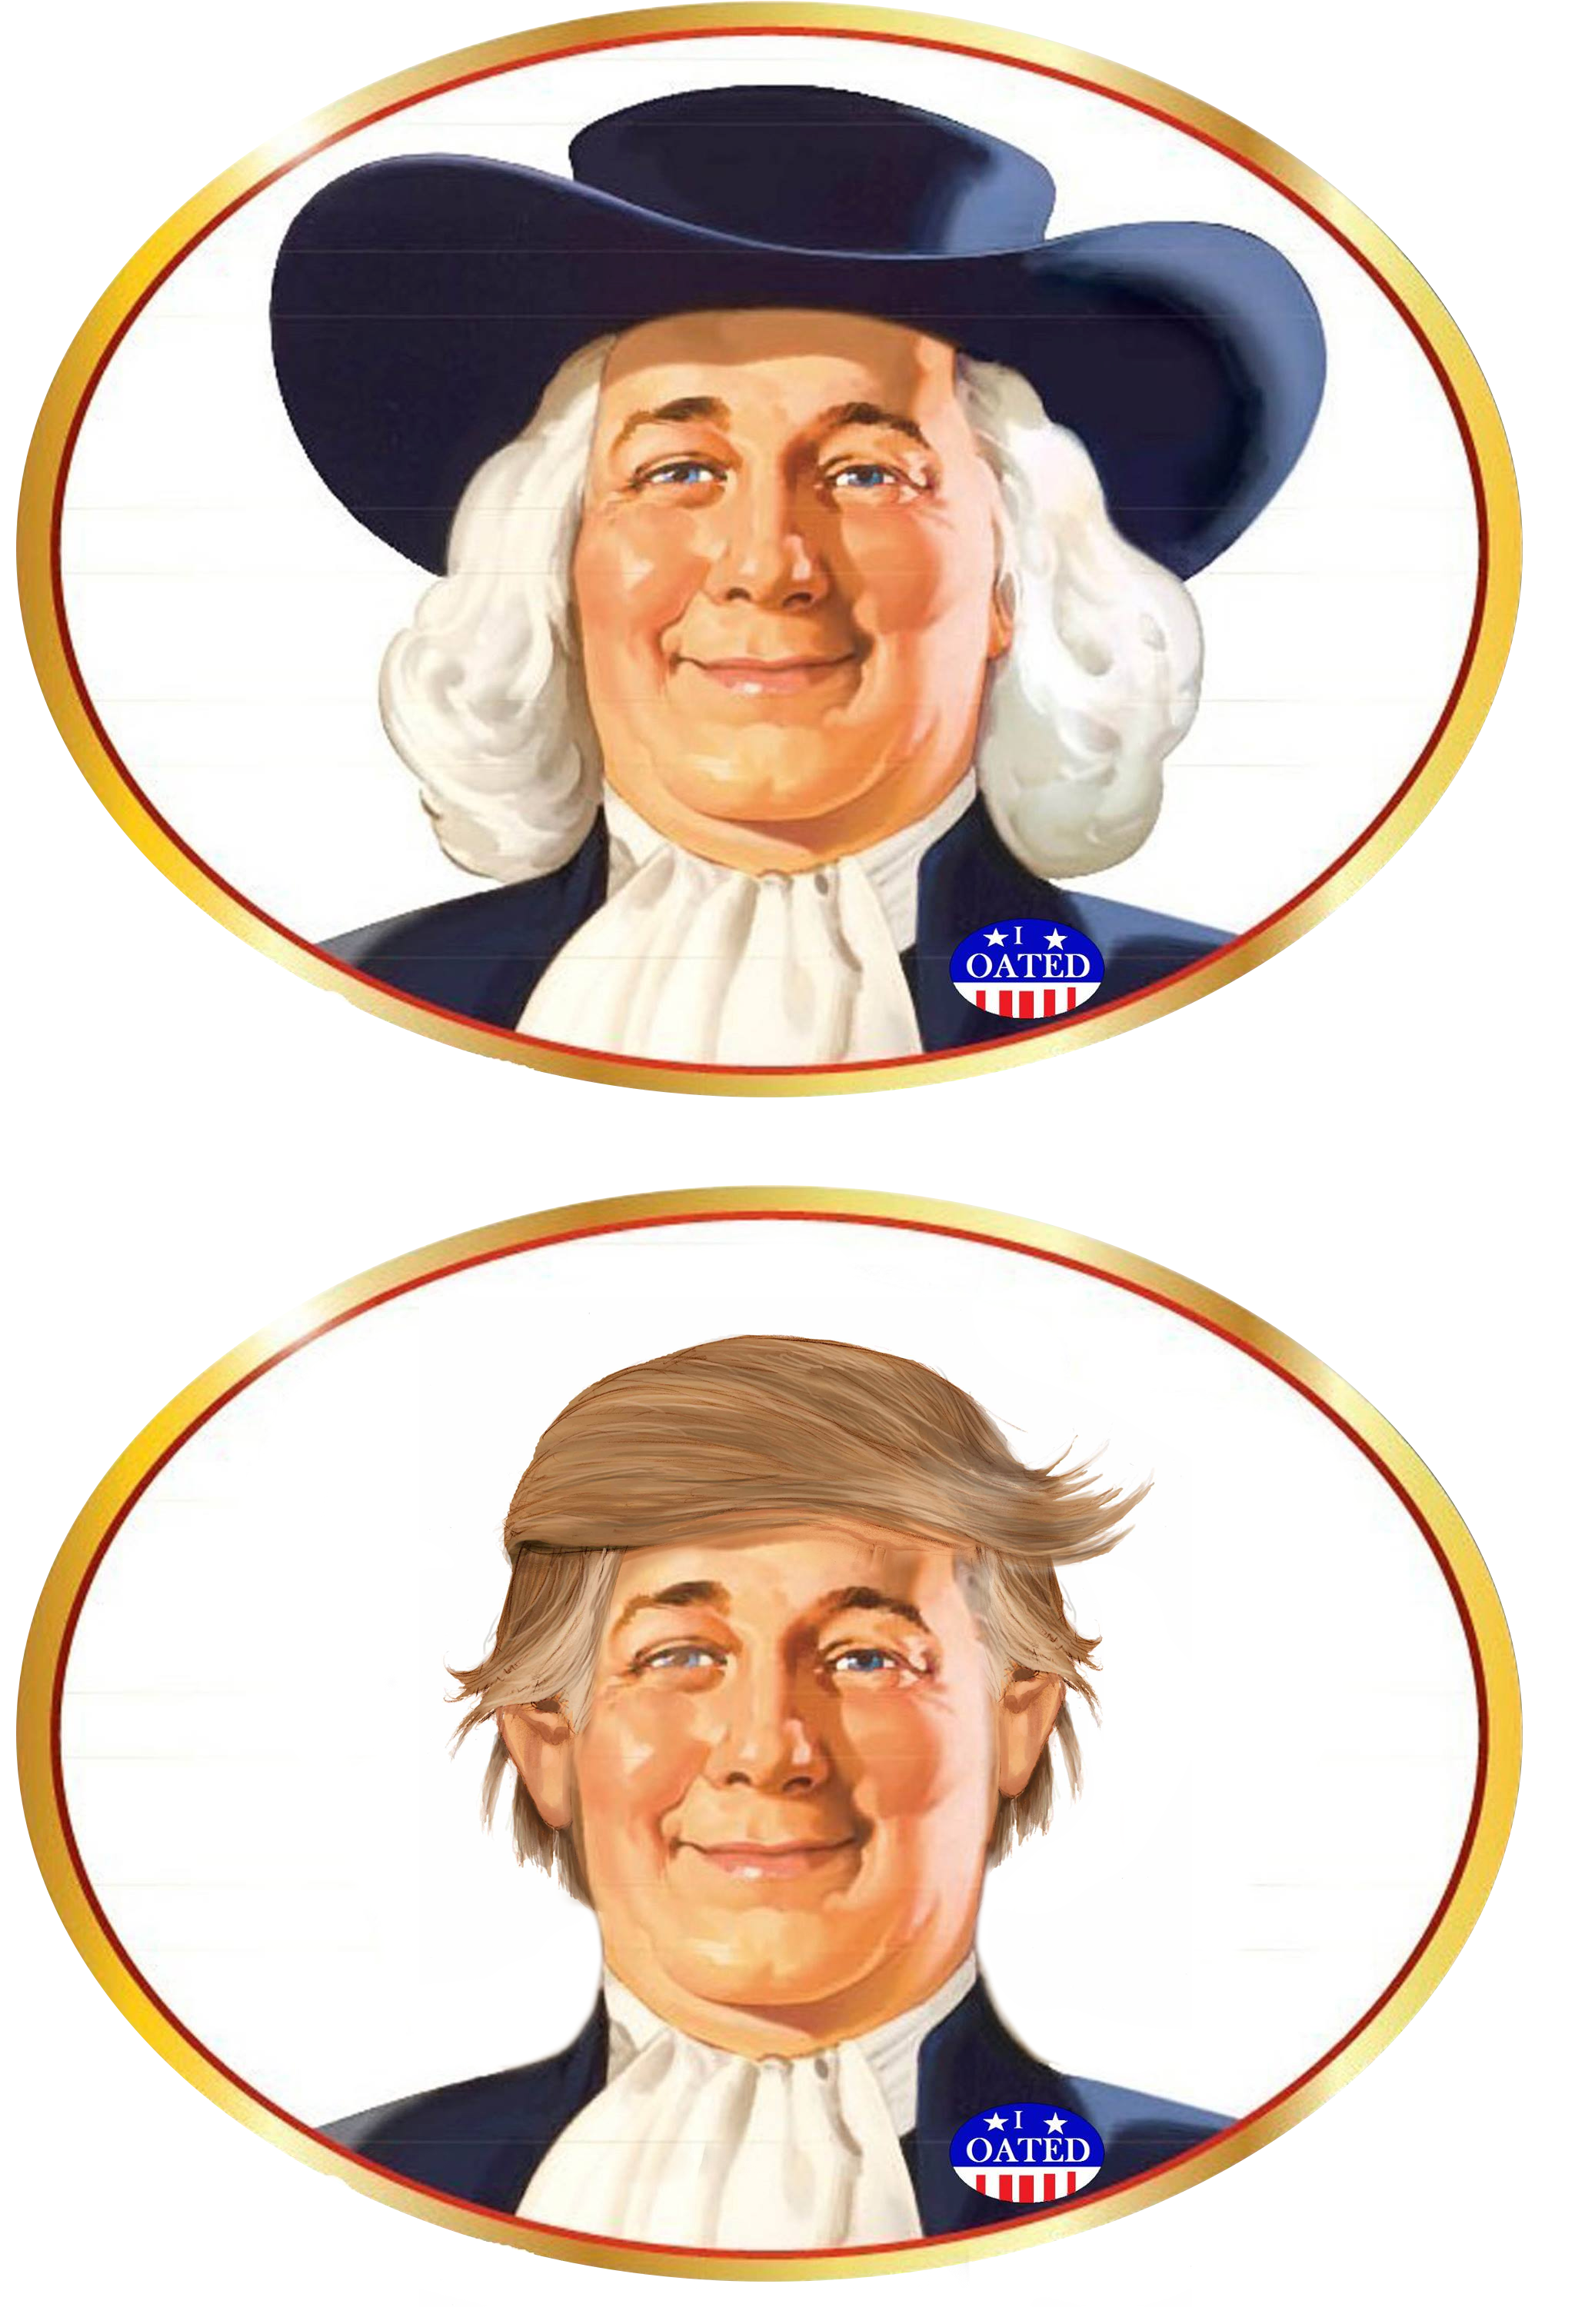 The quaker oats guy kind of looks like a charming Donald.